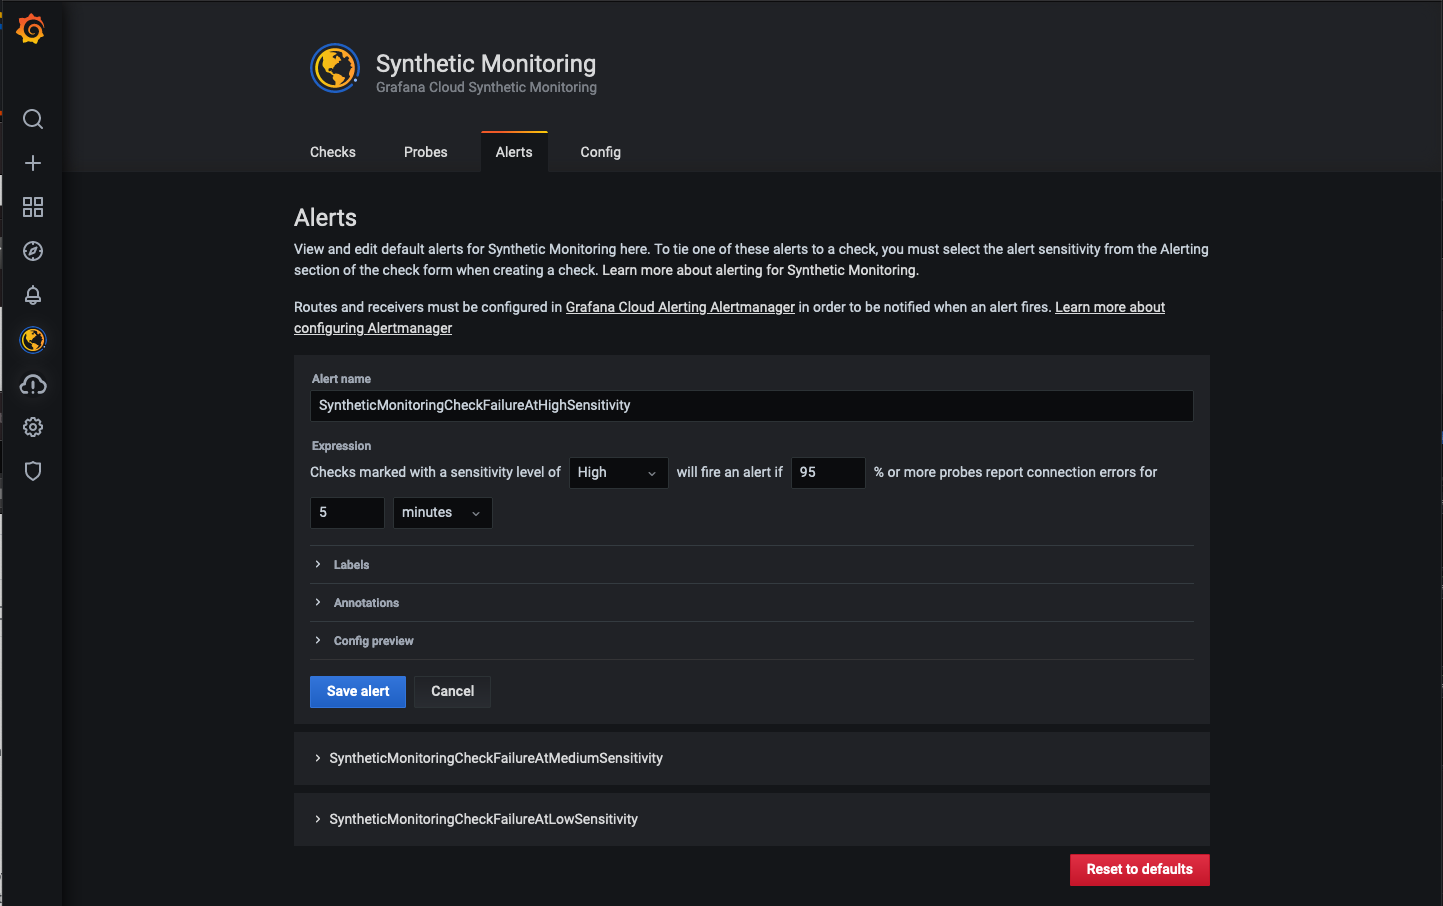 Synthetic Monitoring alerts